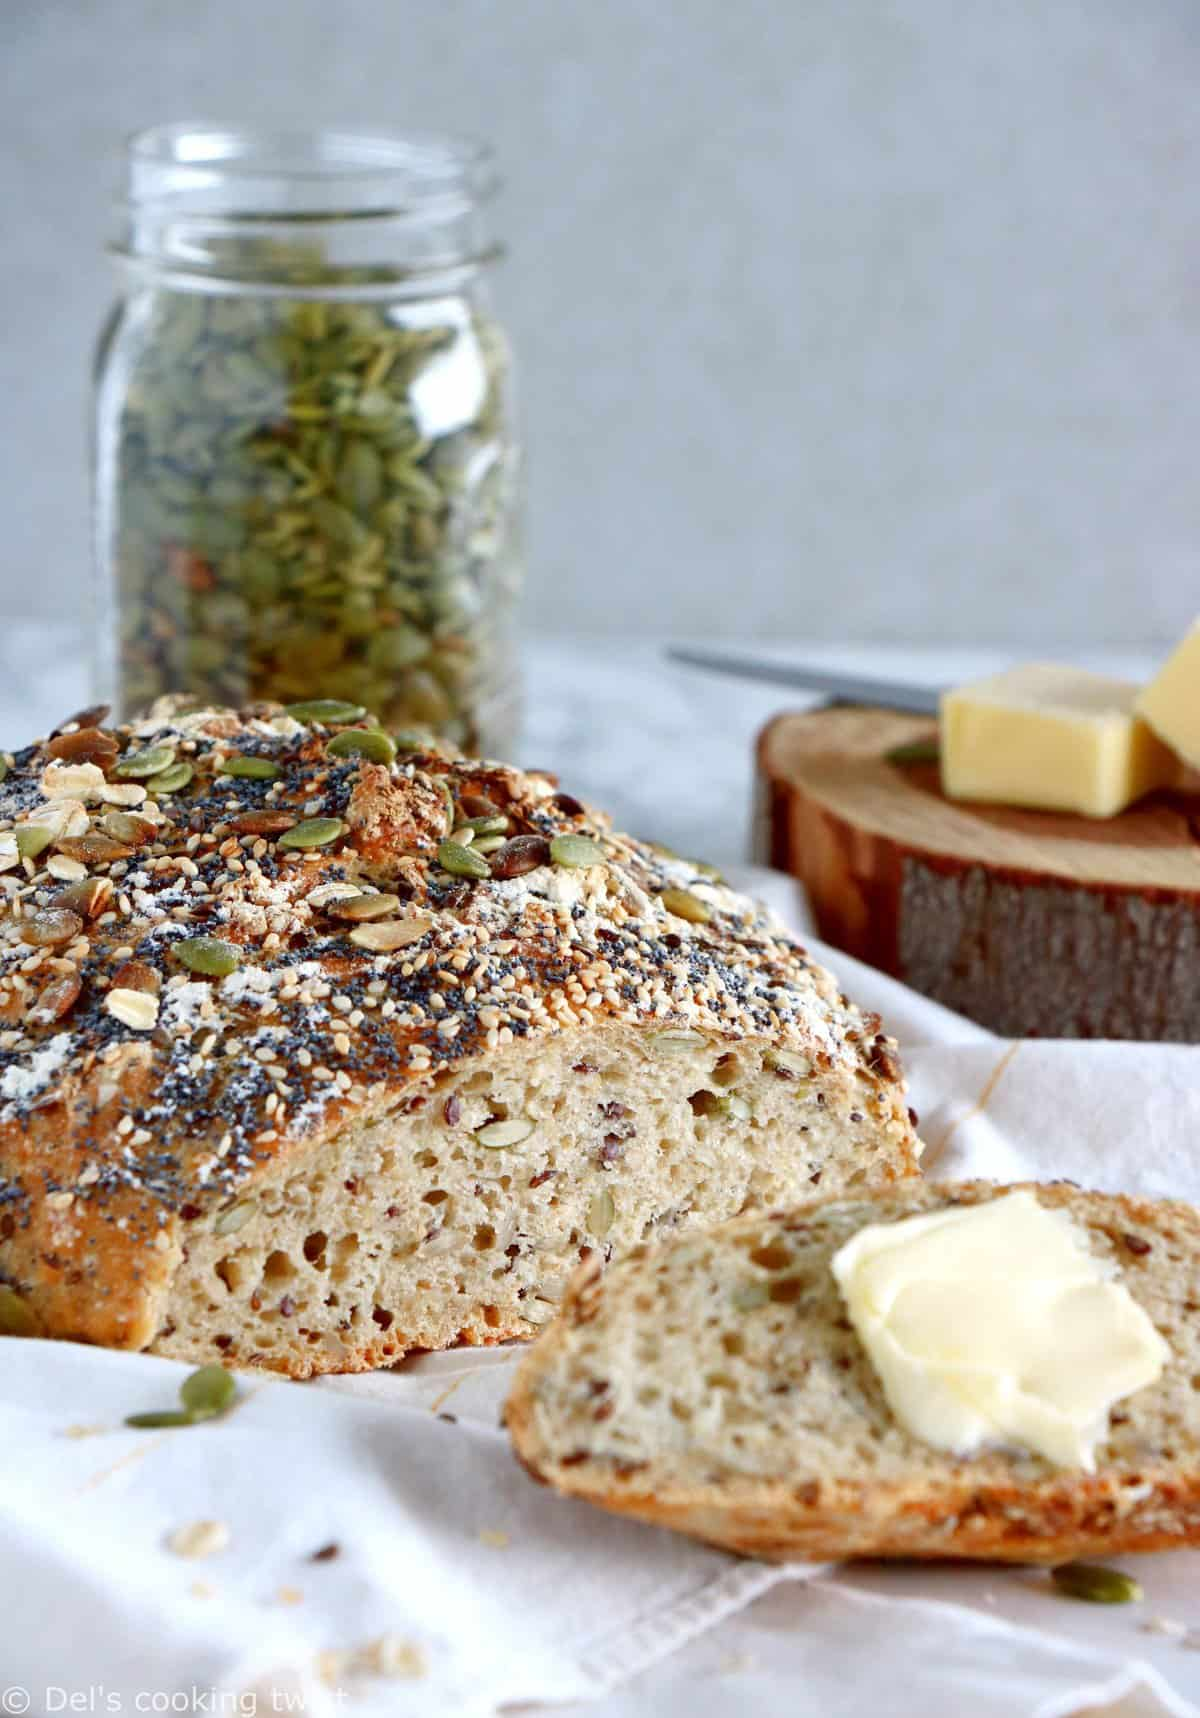 Multiseed No-Knead Bread — Del's cooking twist